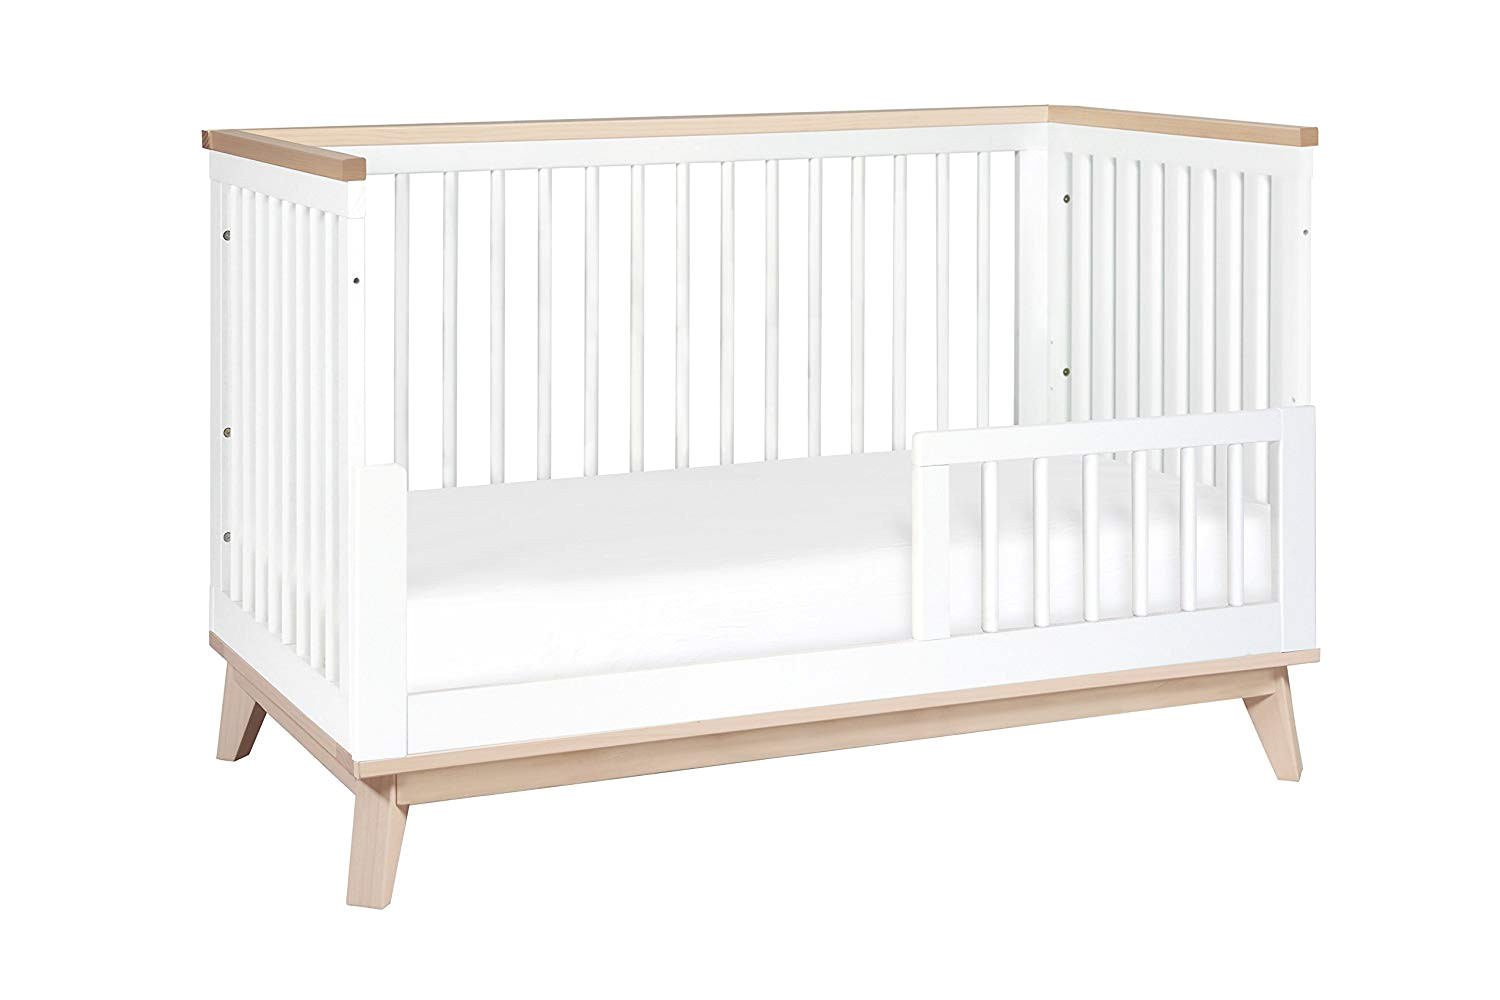 amazon com babyletto scoot 3 in 1 convertible crib with toddler bed conversion kit white washed natural baby